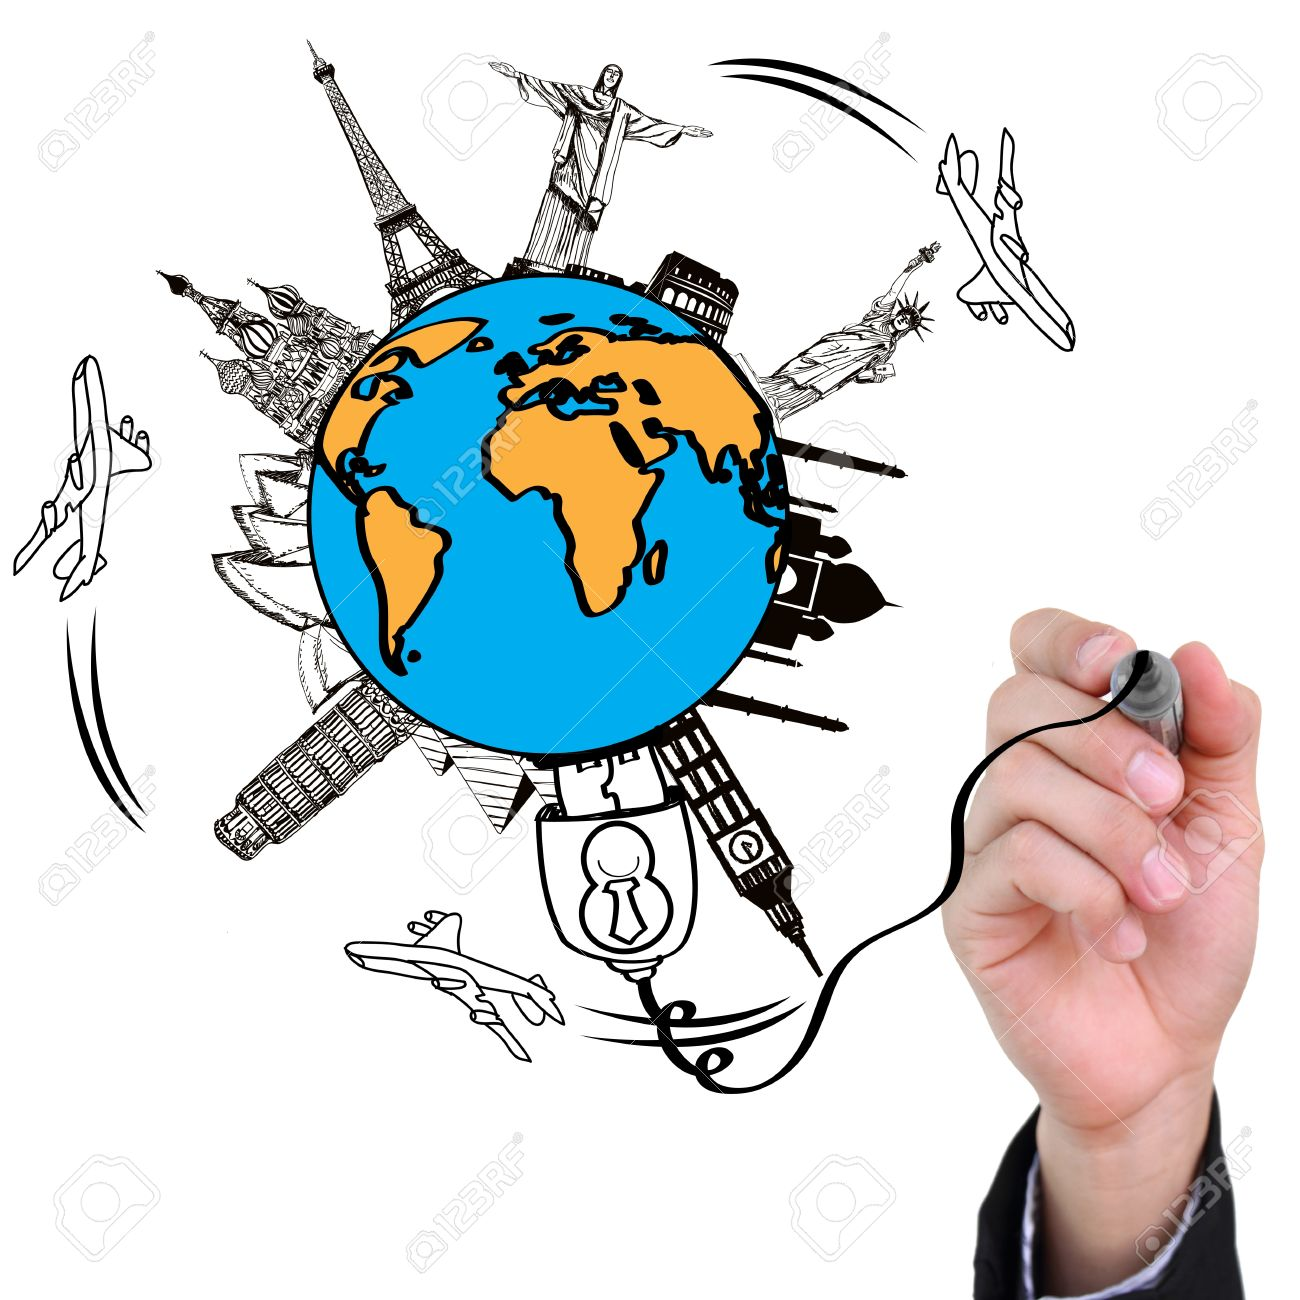 Businessman Hand Drawing Travel The World Monument Concept